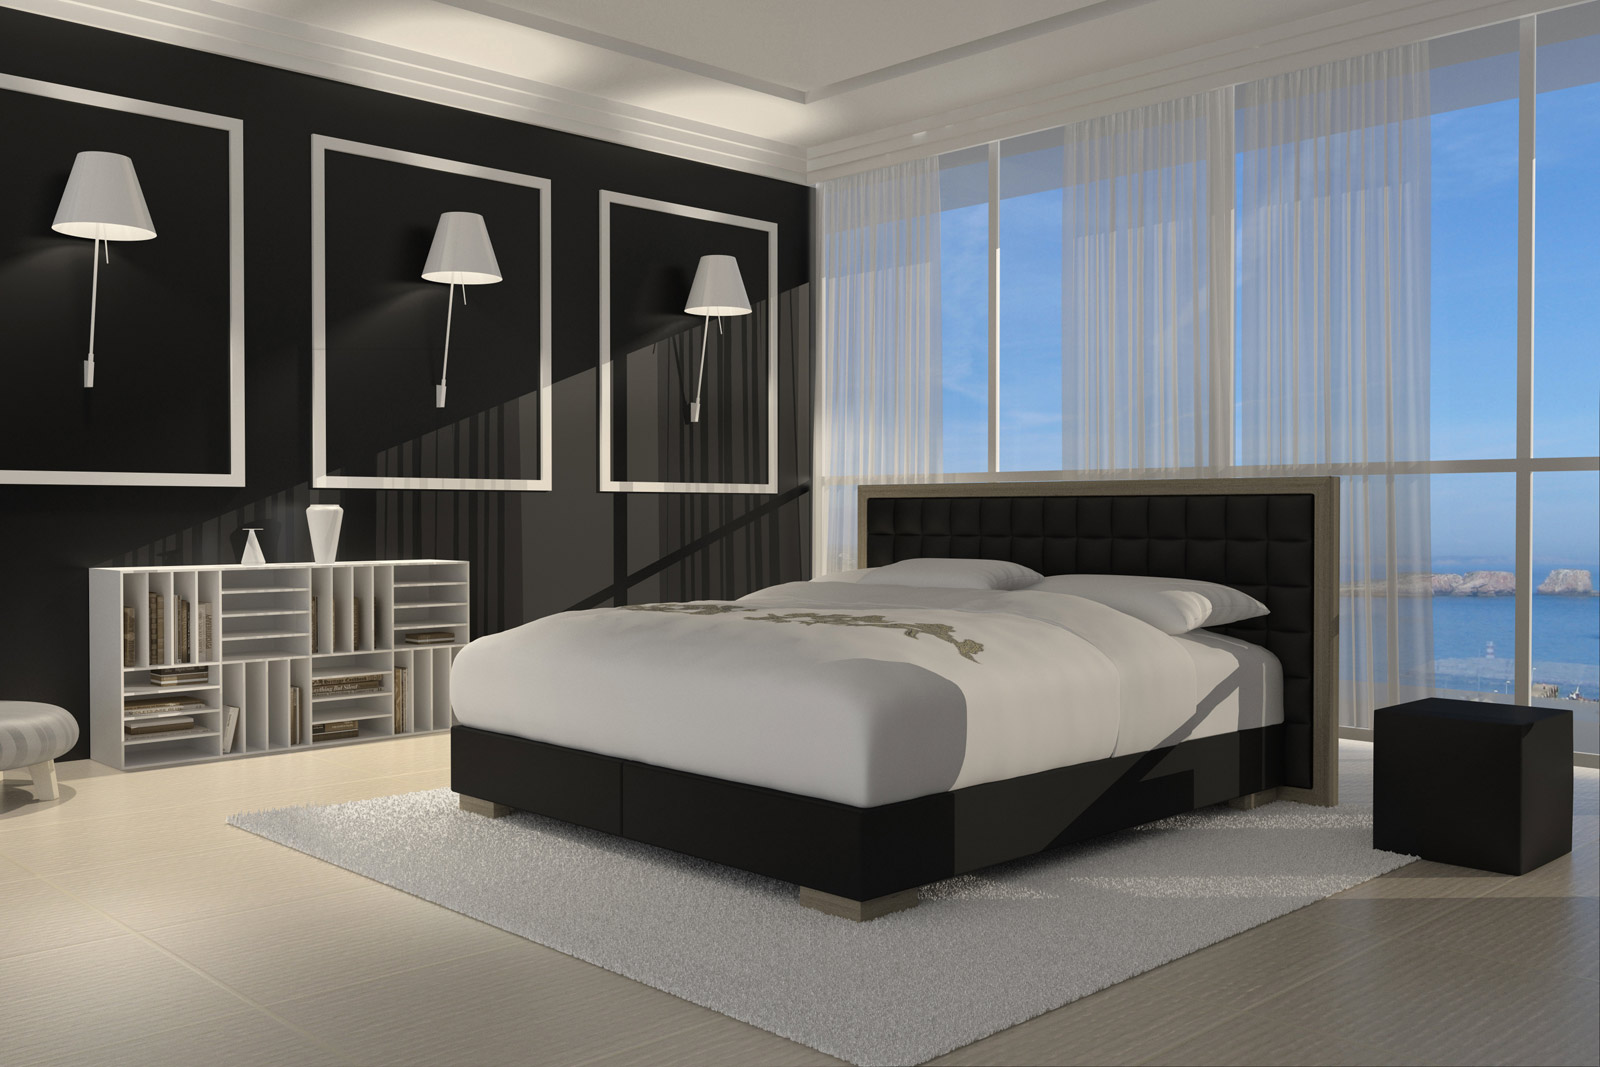 sam design boxspringbett 180 x 200 cm schwarz havanna. Black Bedroom Furniture Sets. Home Design Ideas